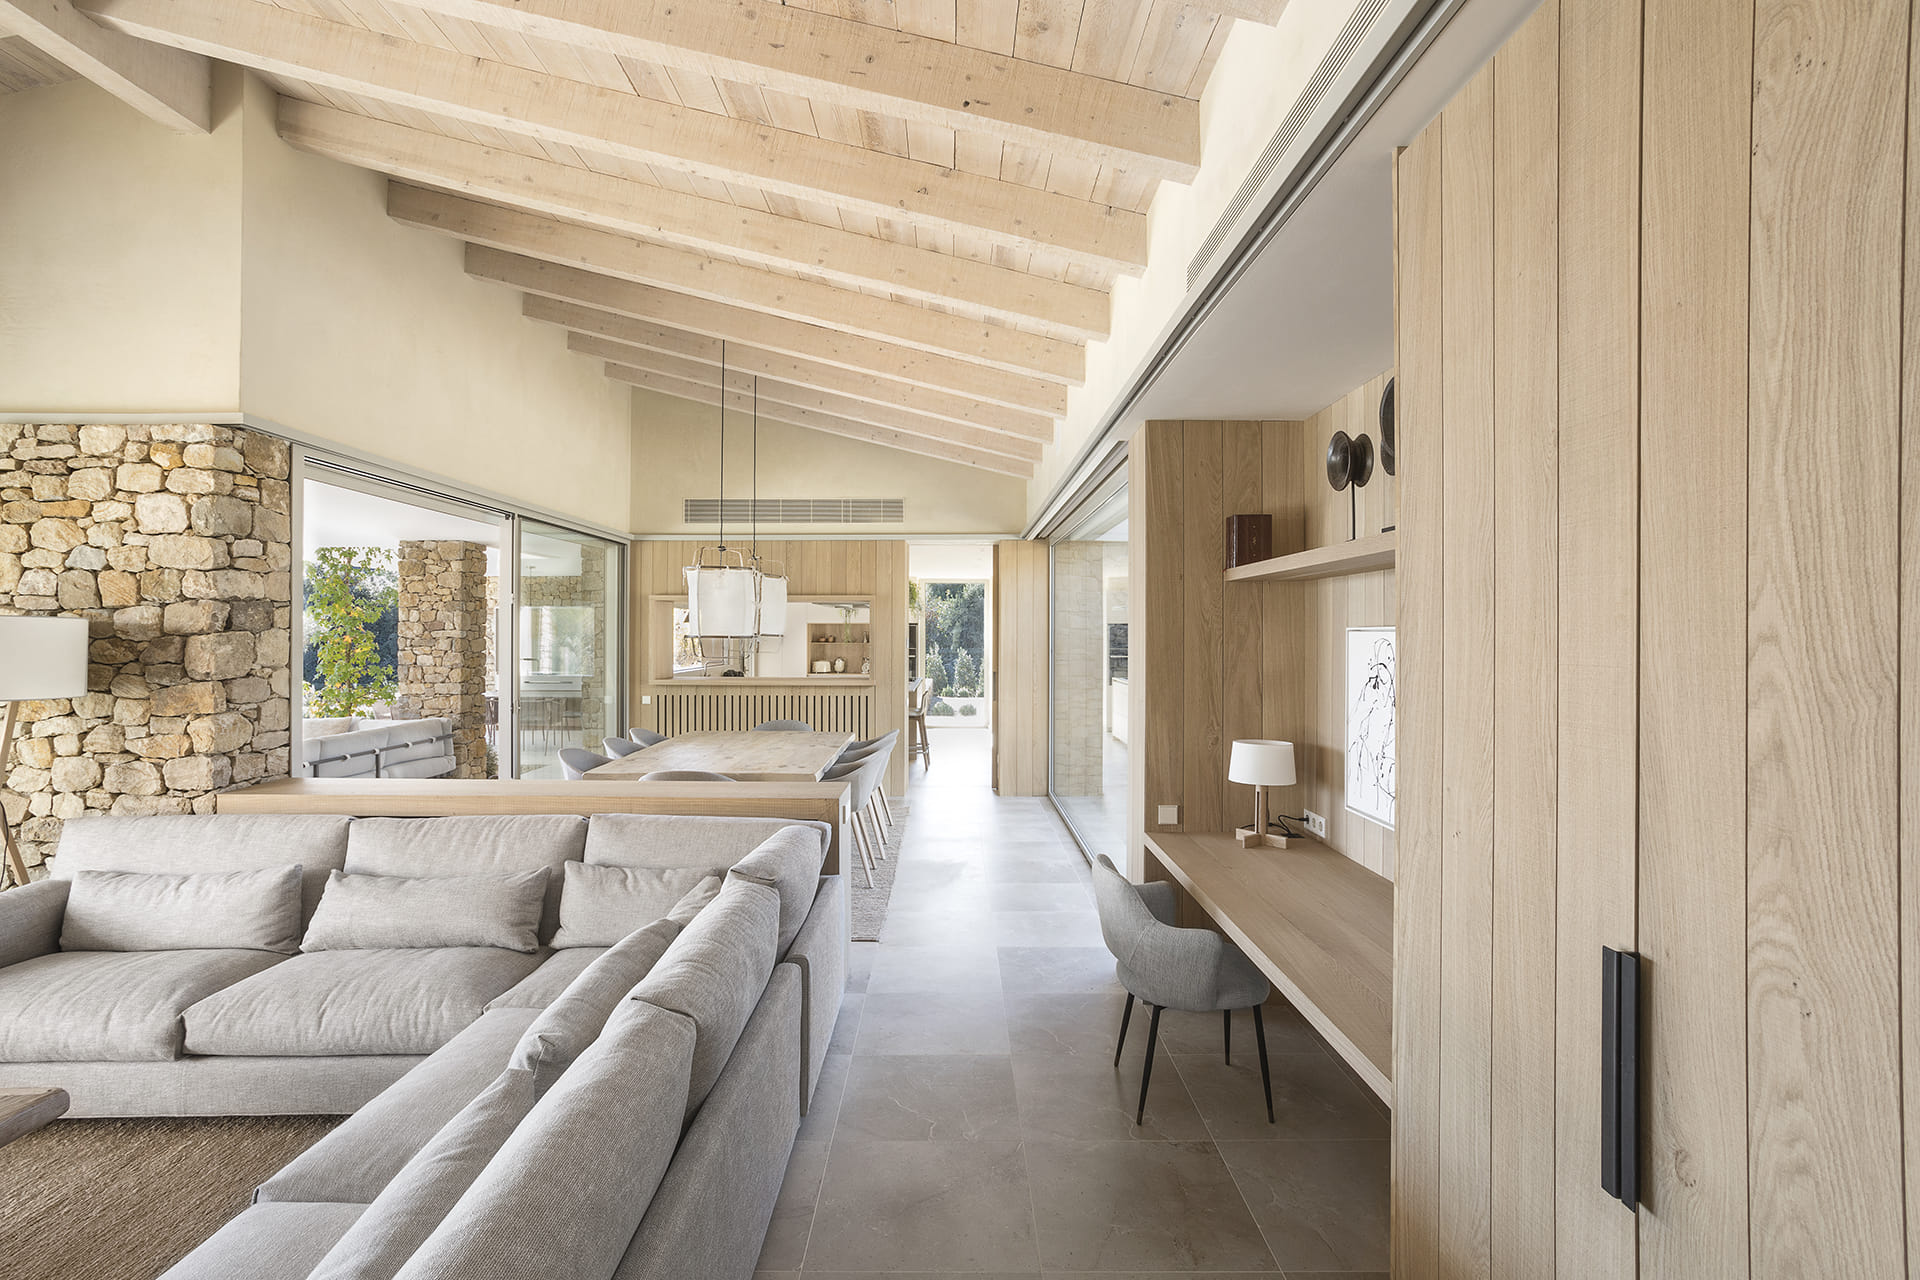 Open-plan living area, kitchen and dining area with large windows